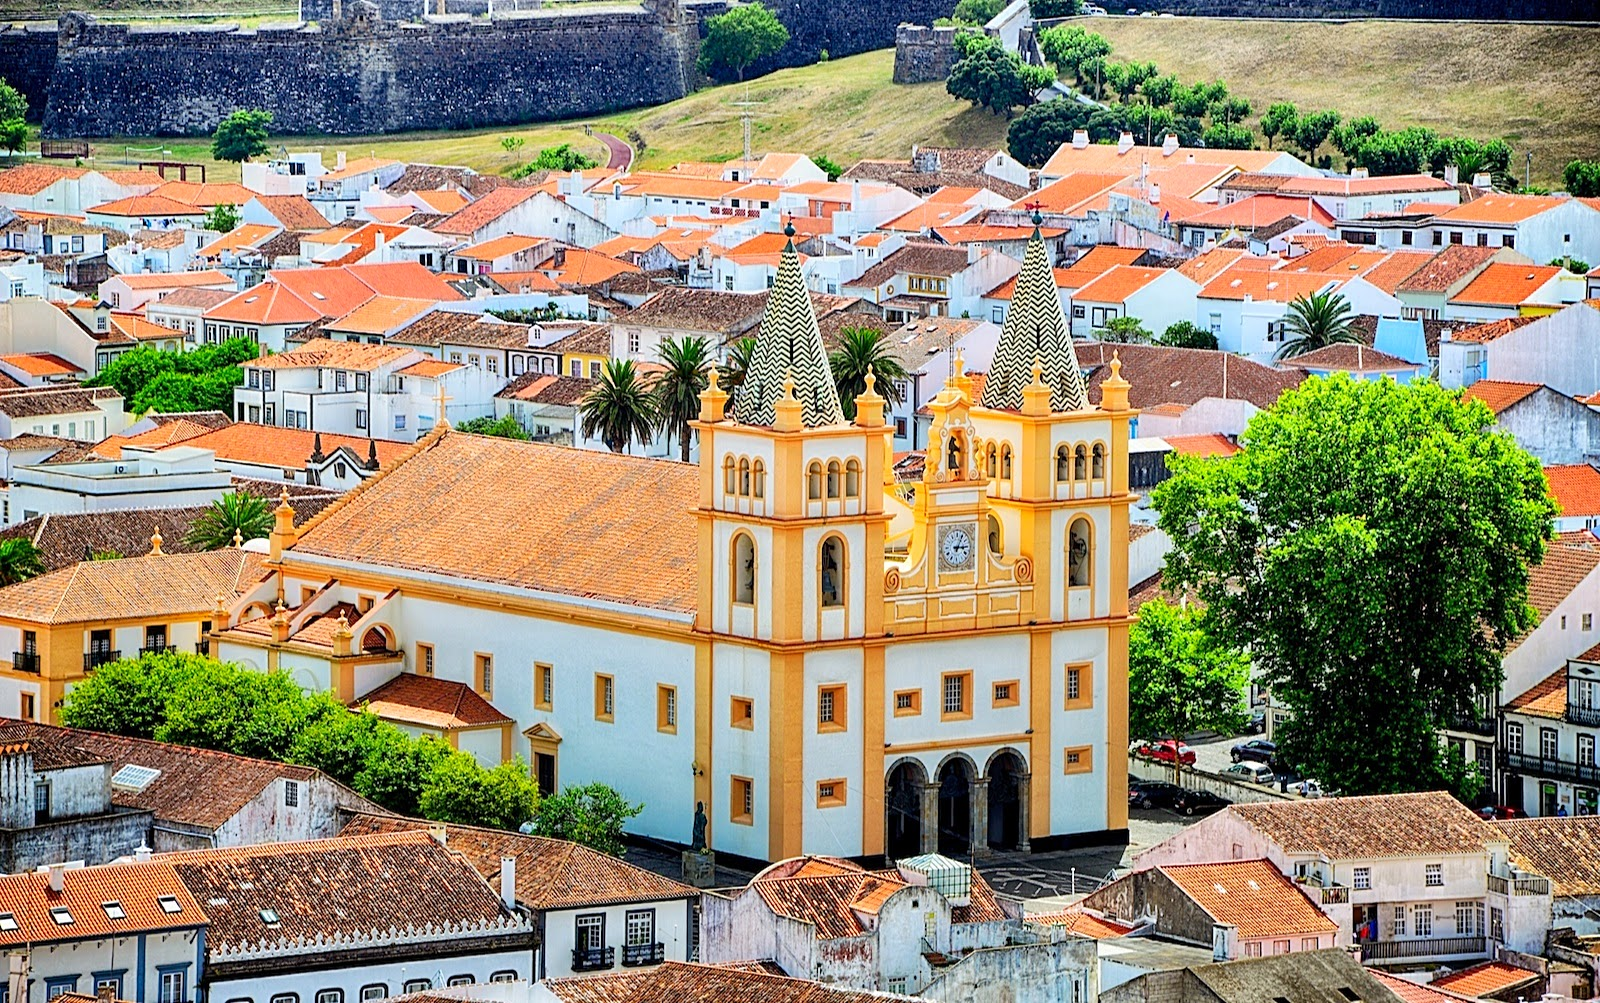 The main church, better known as Sé Cathedral of Angra do Heroísmo, Terceira Island, Azores, Portugal